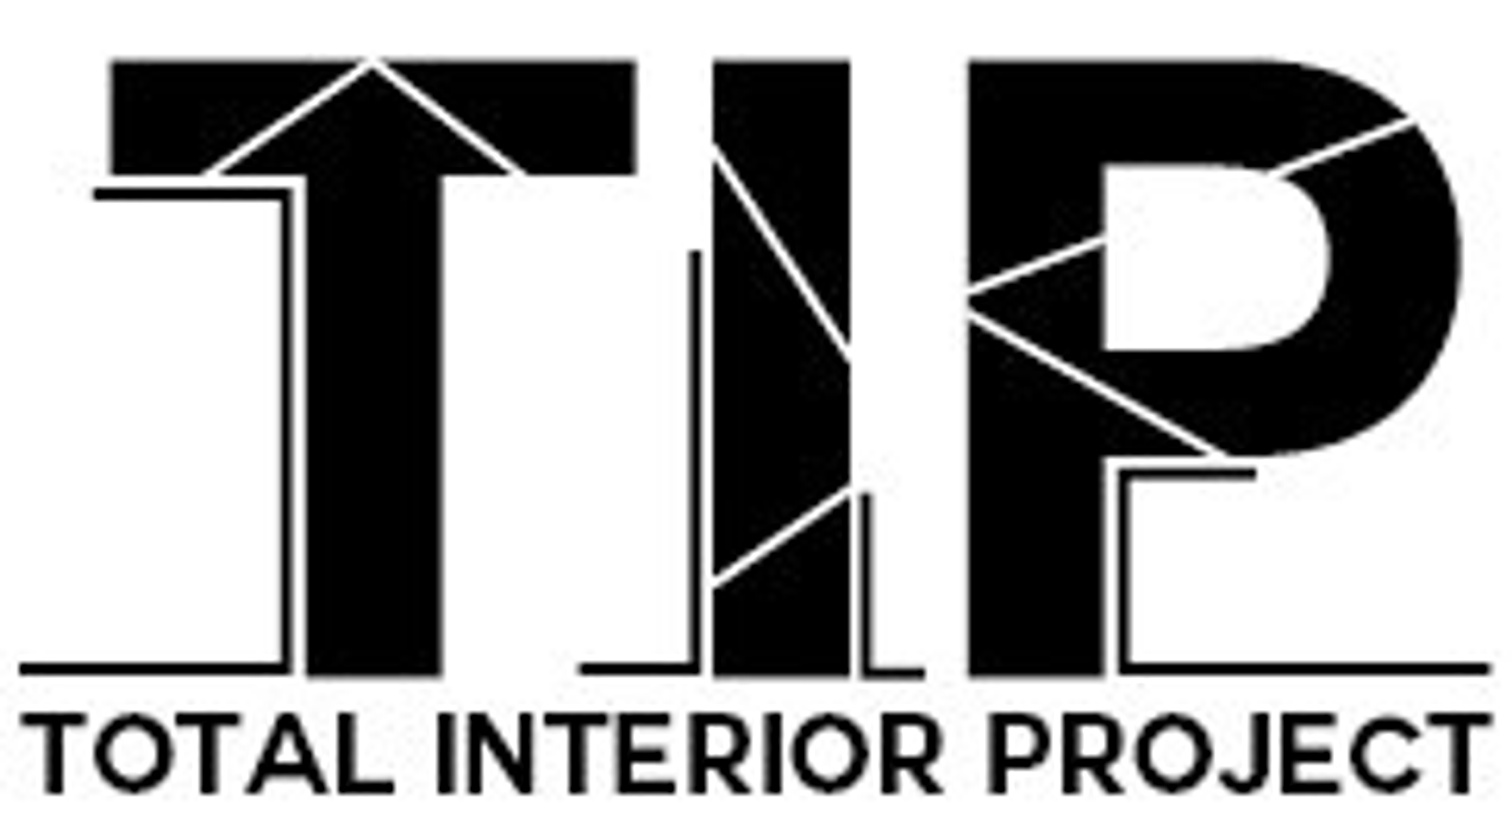 Total Interior Project BV logo